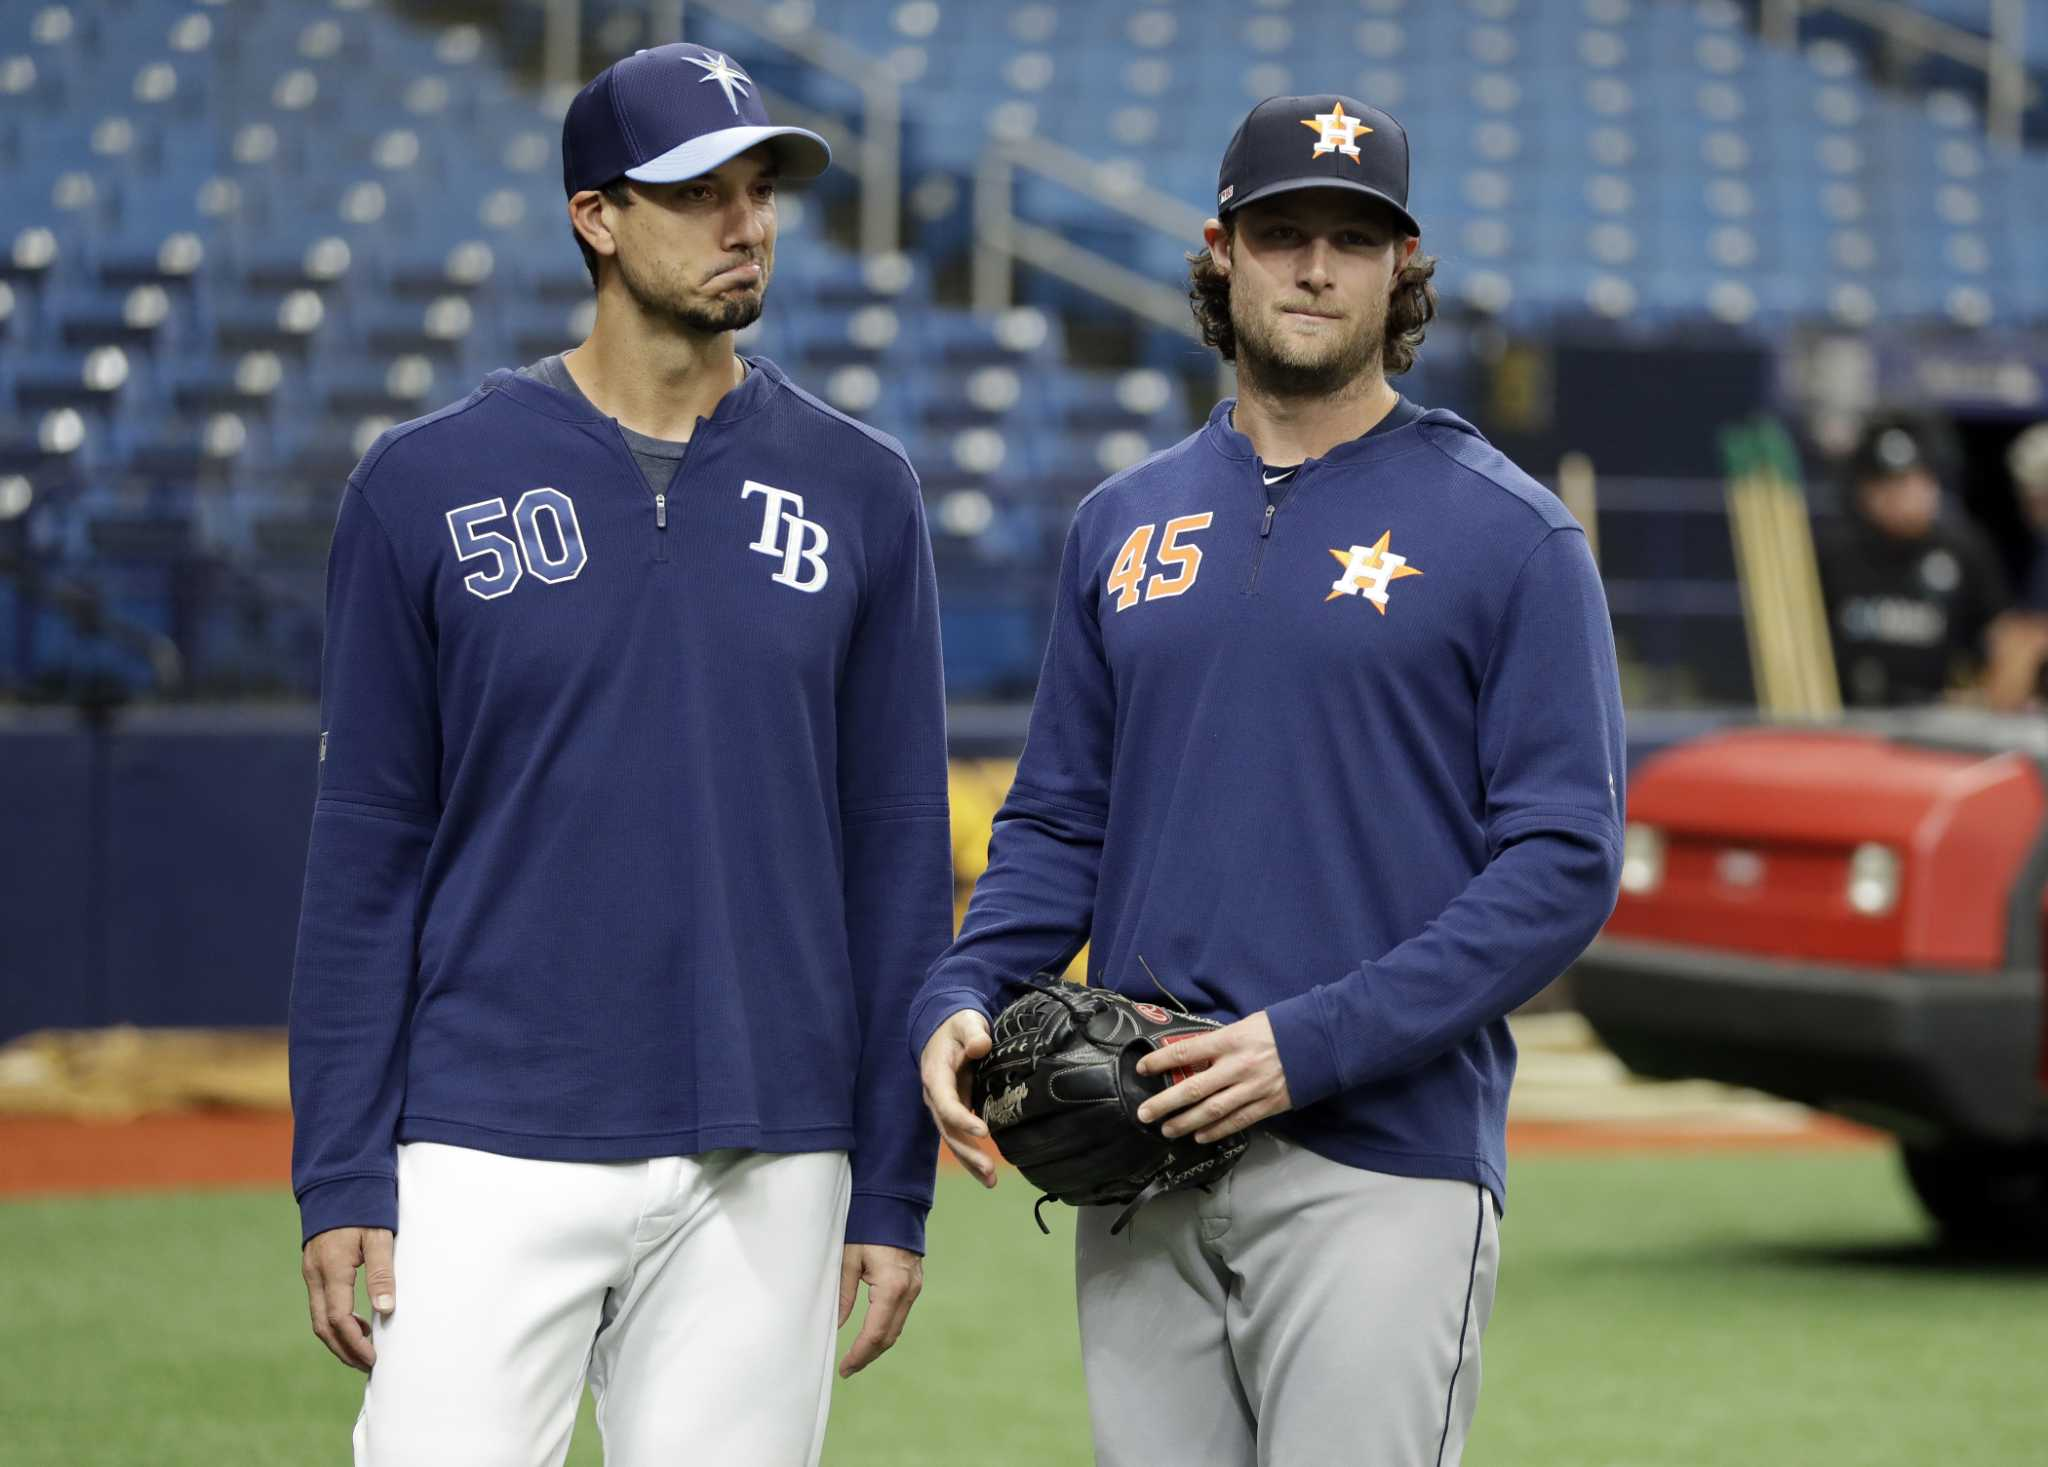 mixed emotions for astros facing old friend charlie morton houstonchronicle com https www houstonchronicle com texas sports nation astros article mixed emotions for astros facing old friend 13725132 php